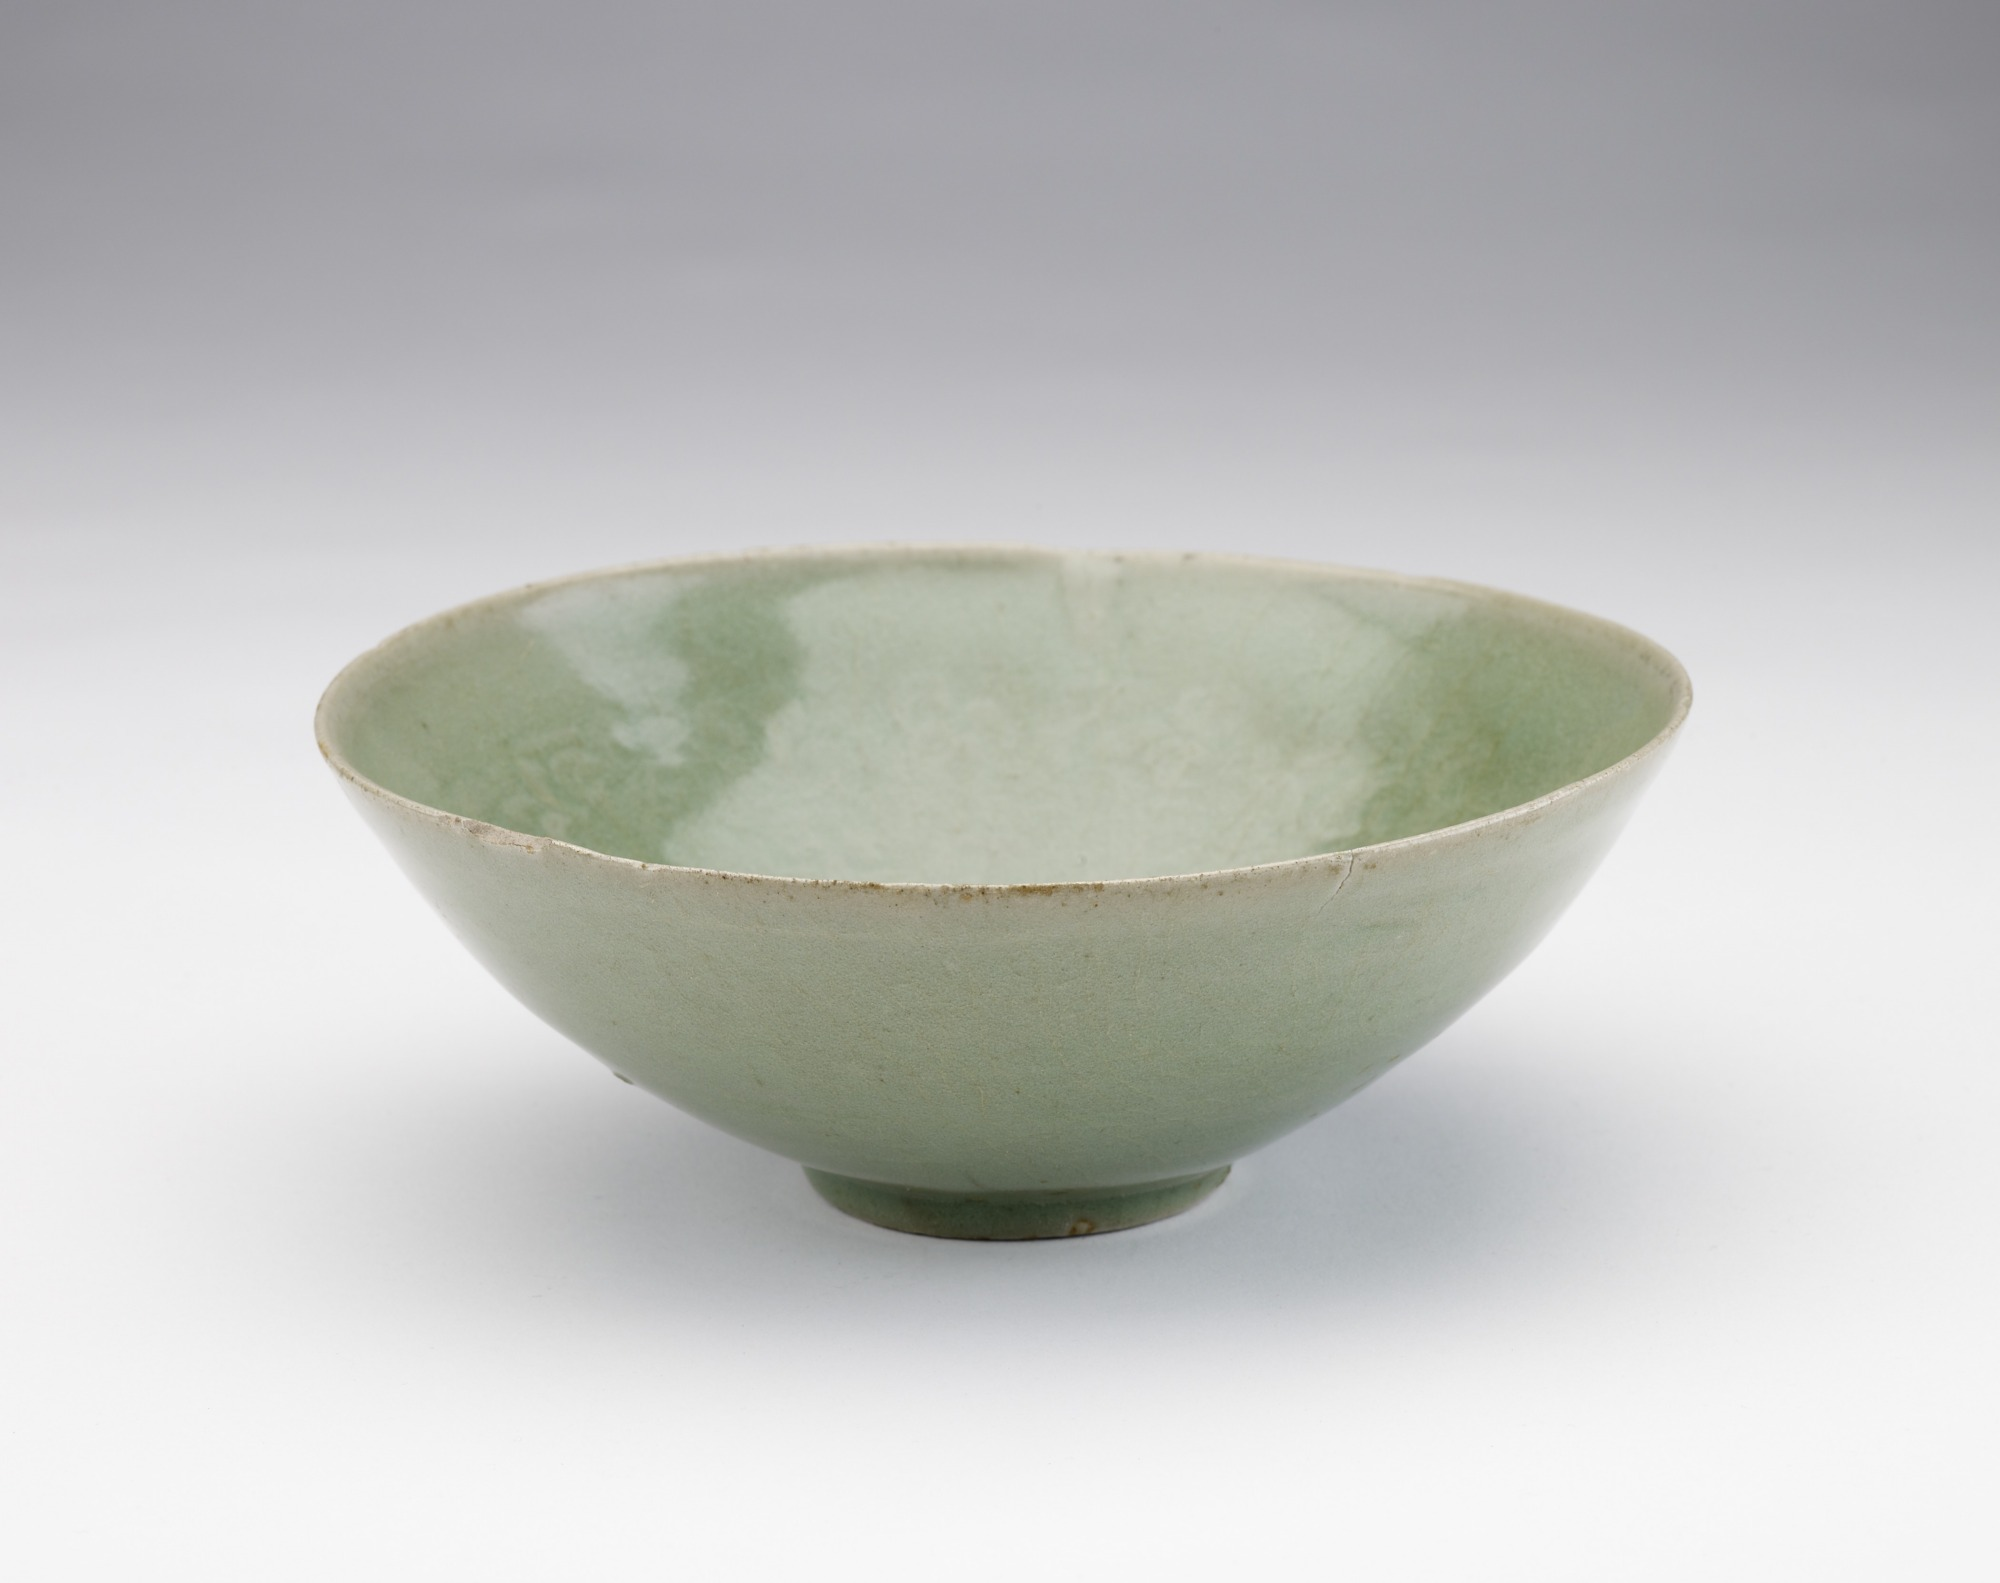 Bowl with molded vinescroll decor, 3/4 profile